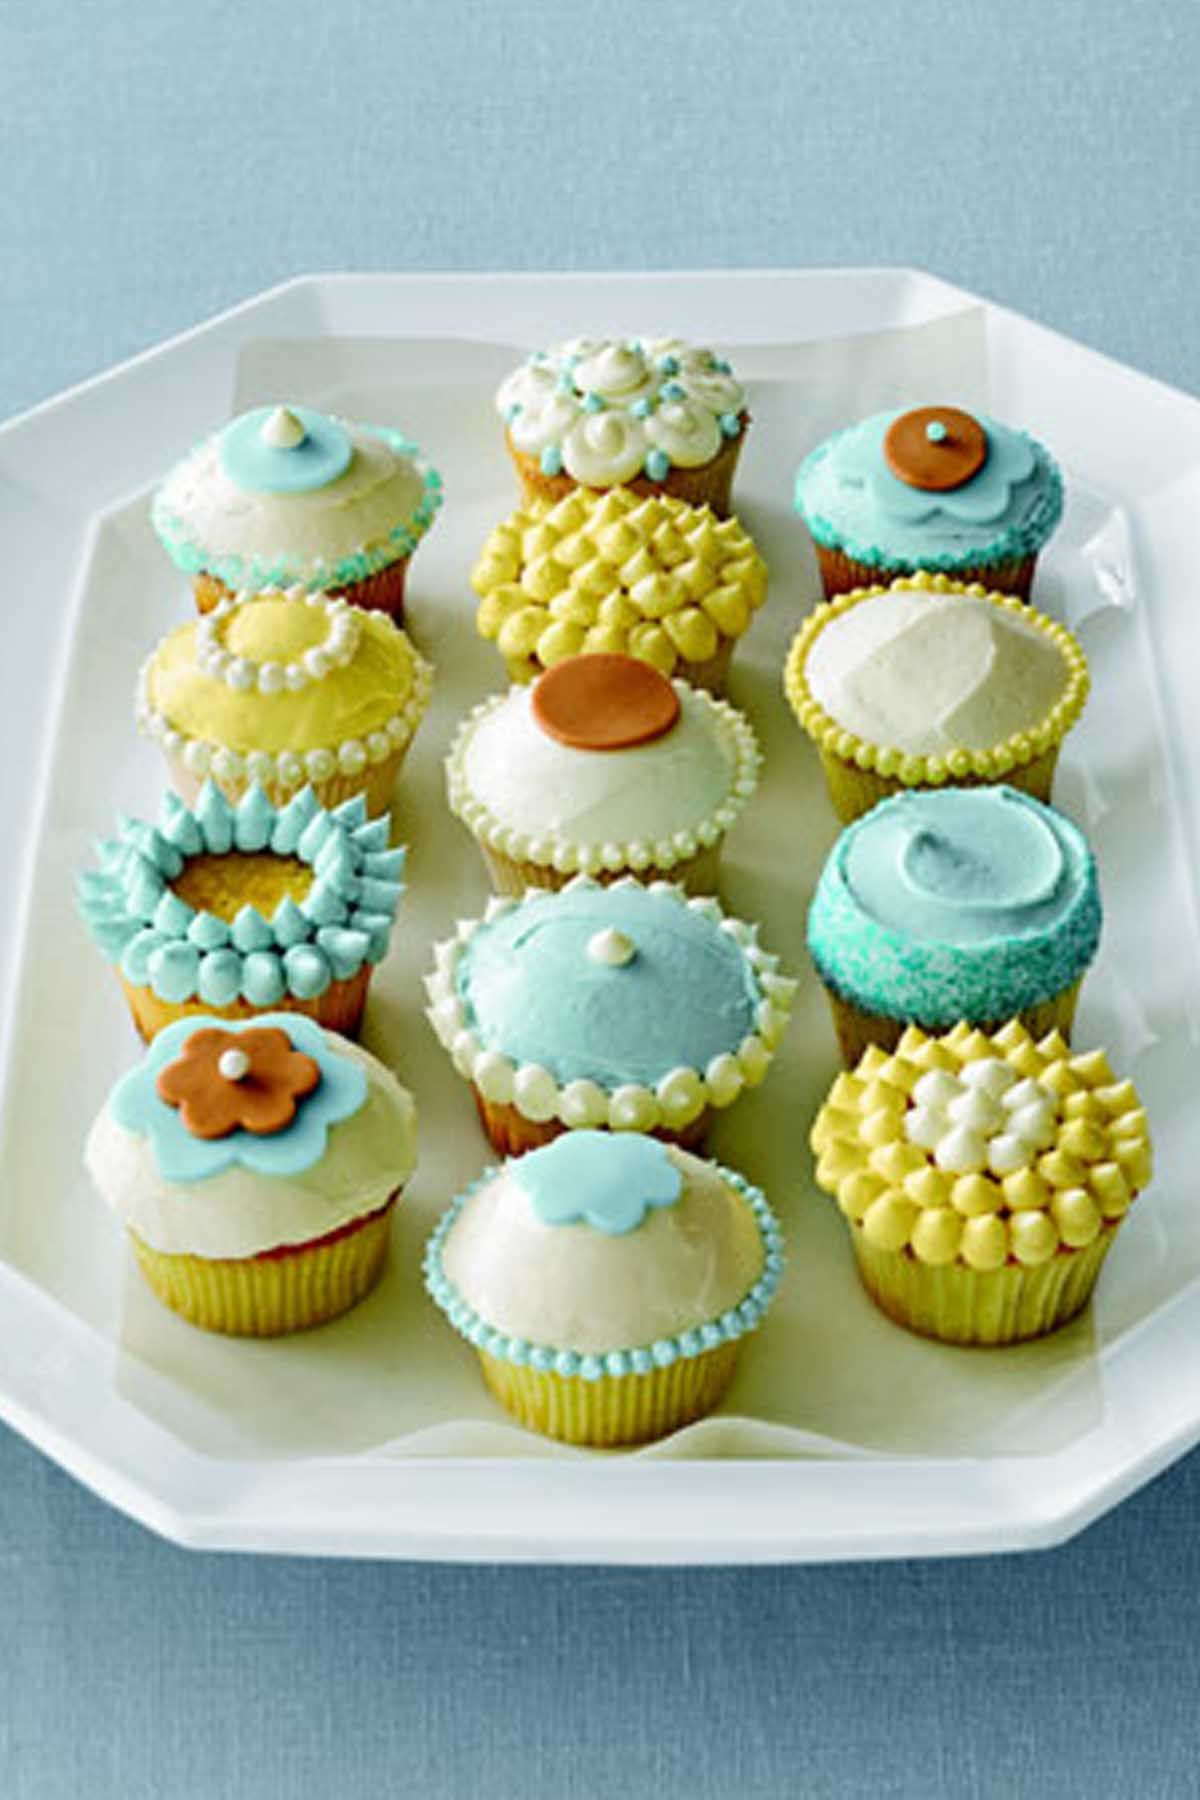 30 Best Cupcake Decorating Ideas Easy Recipes For Homemade Cupcakes